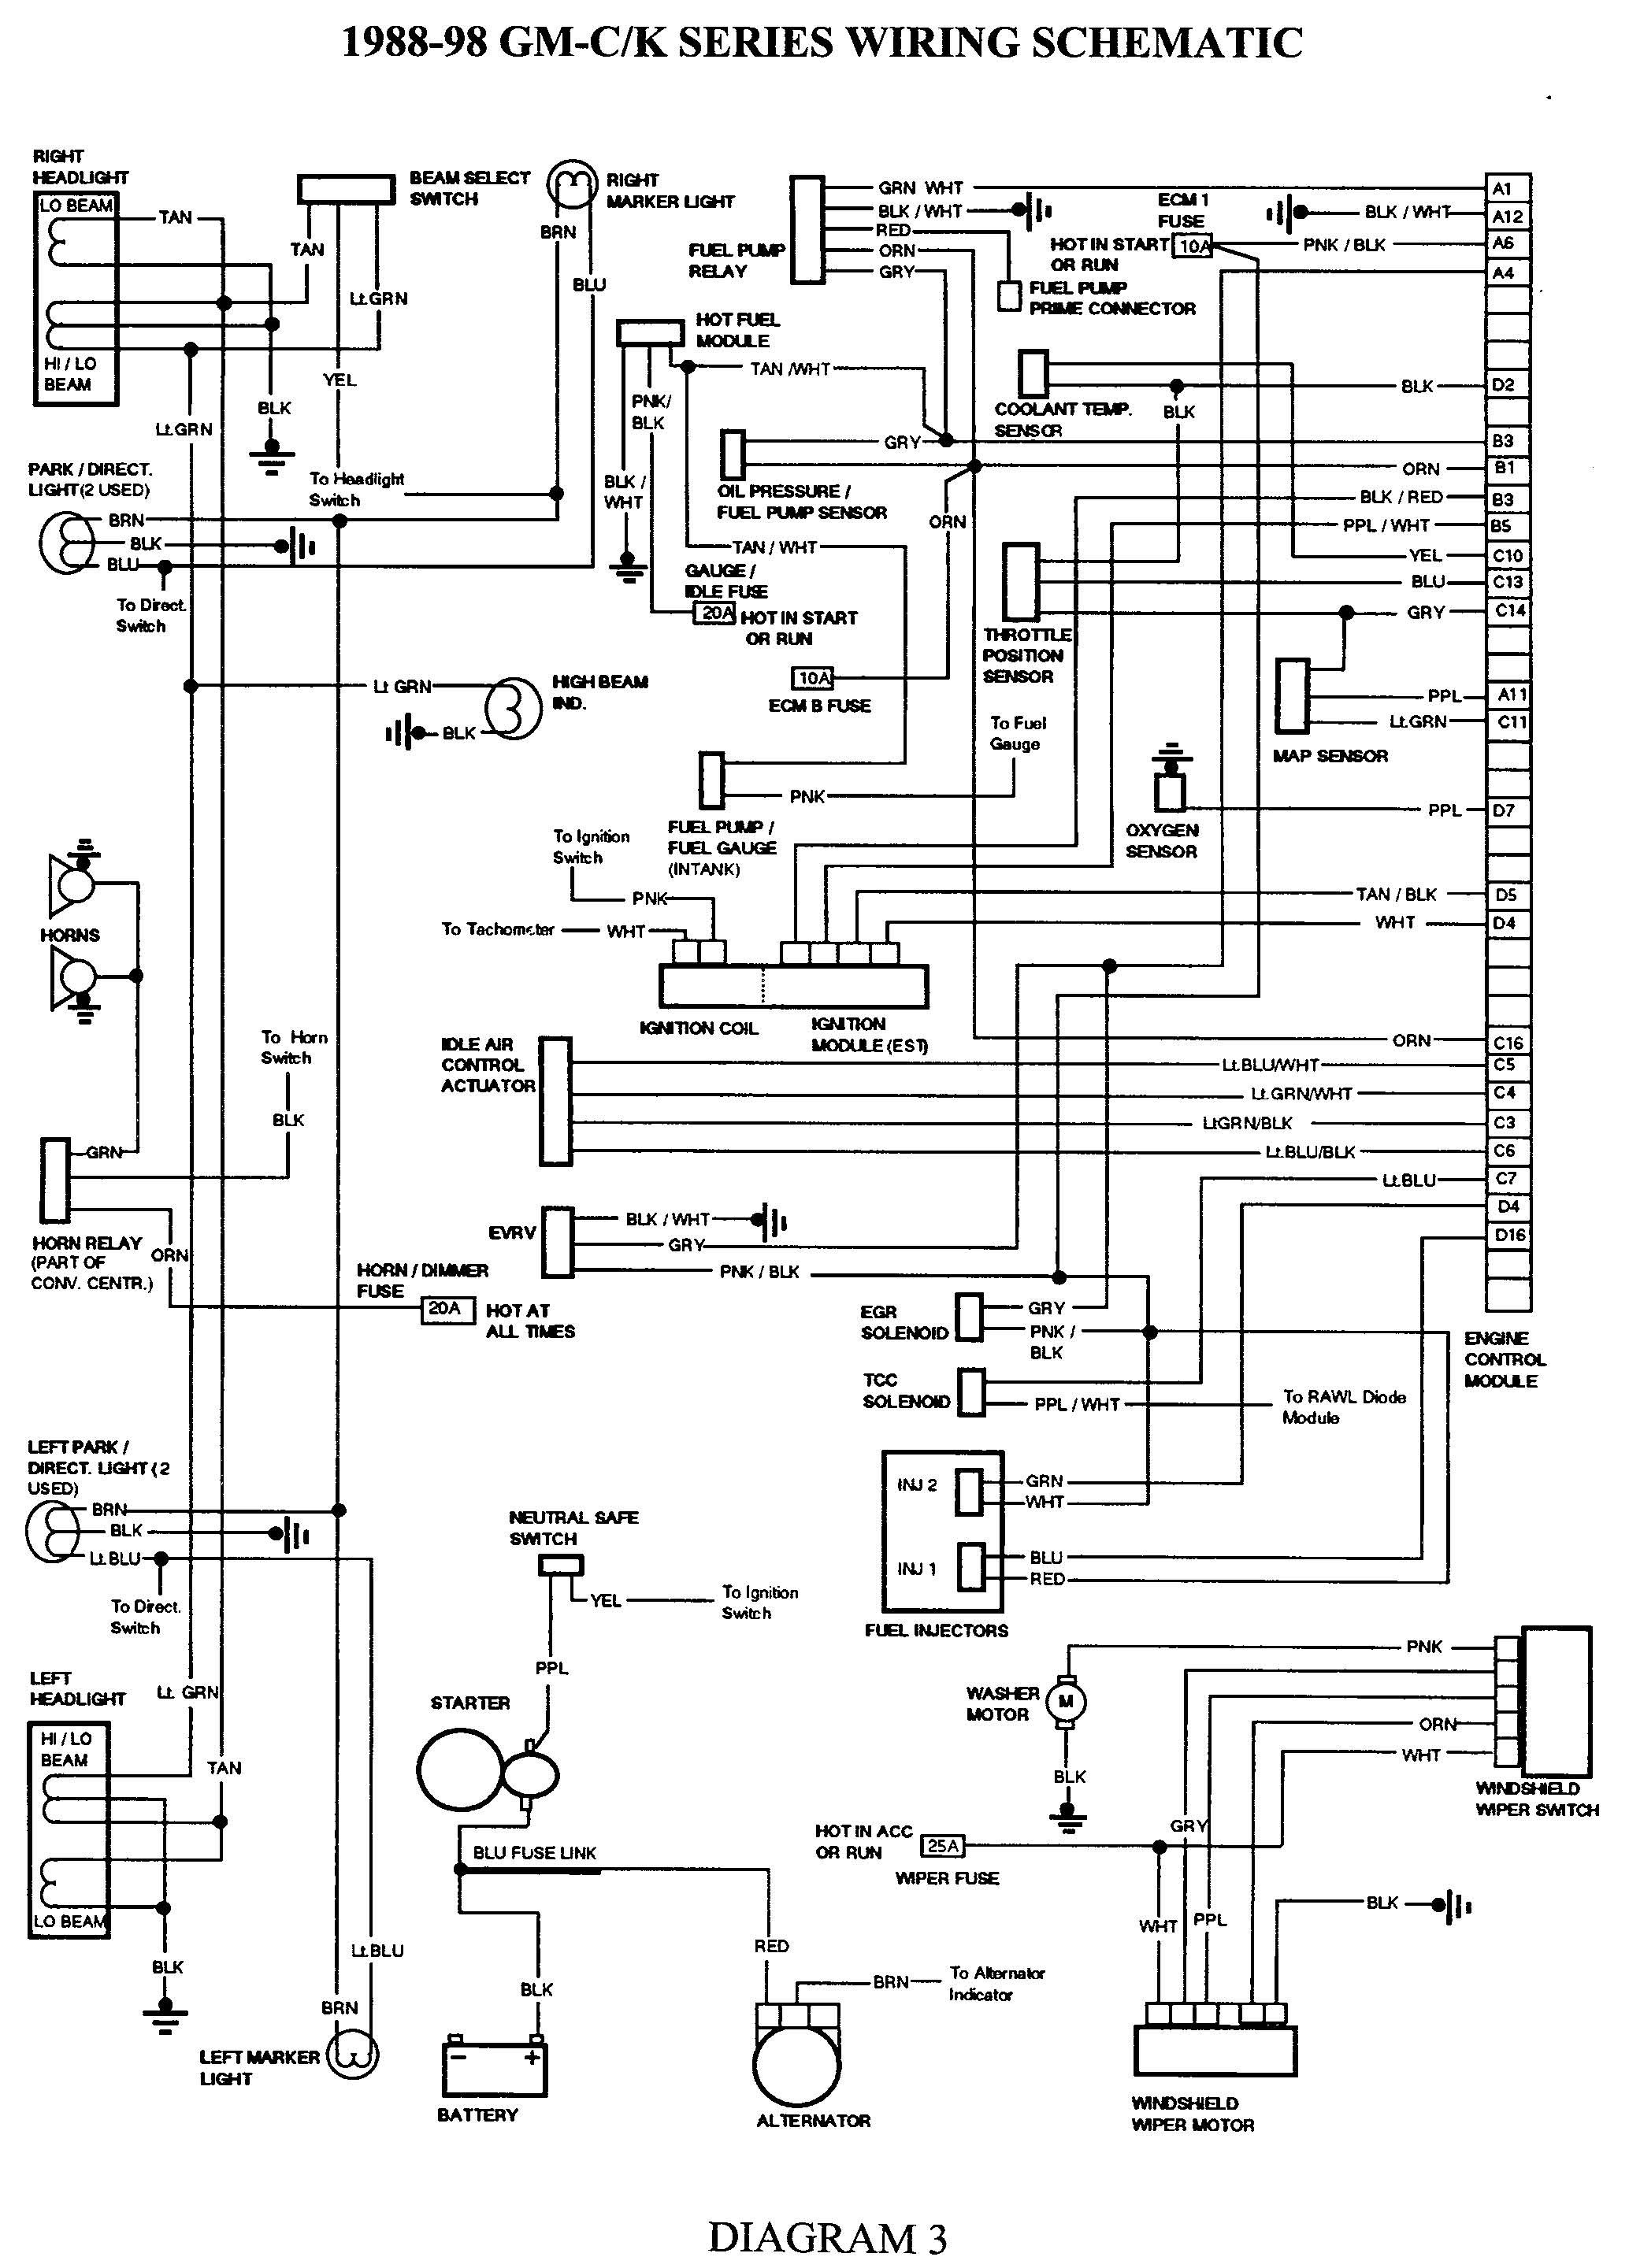 95 camaro 3 4 engine diagram online wiring diagram95 camaro 3 4l v6 engine wiring harness diagram schematic diagrampontiac 3 4 engine wiring diagram